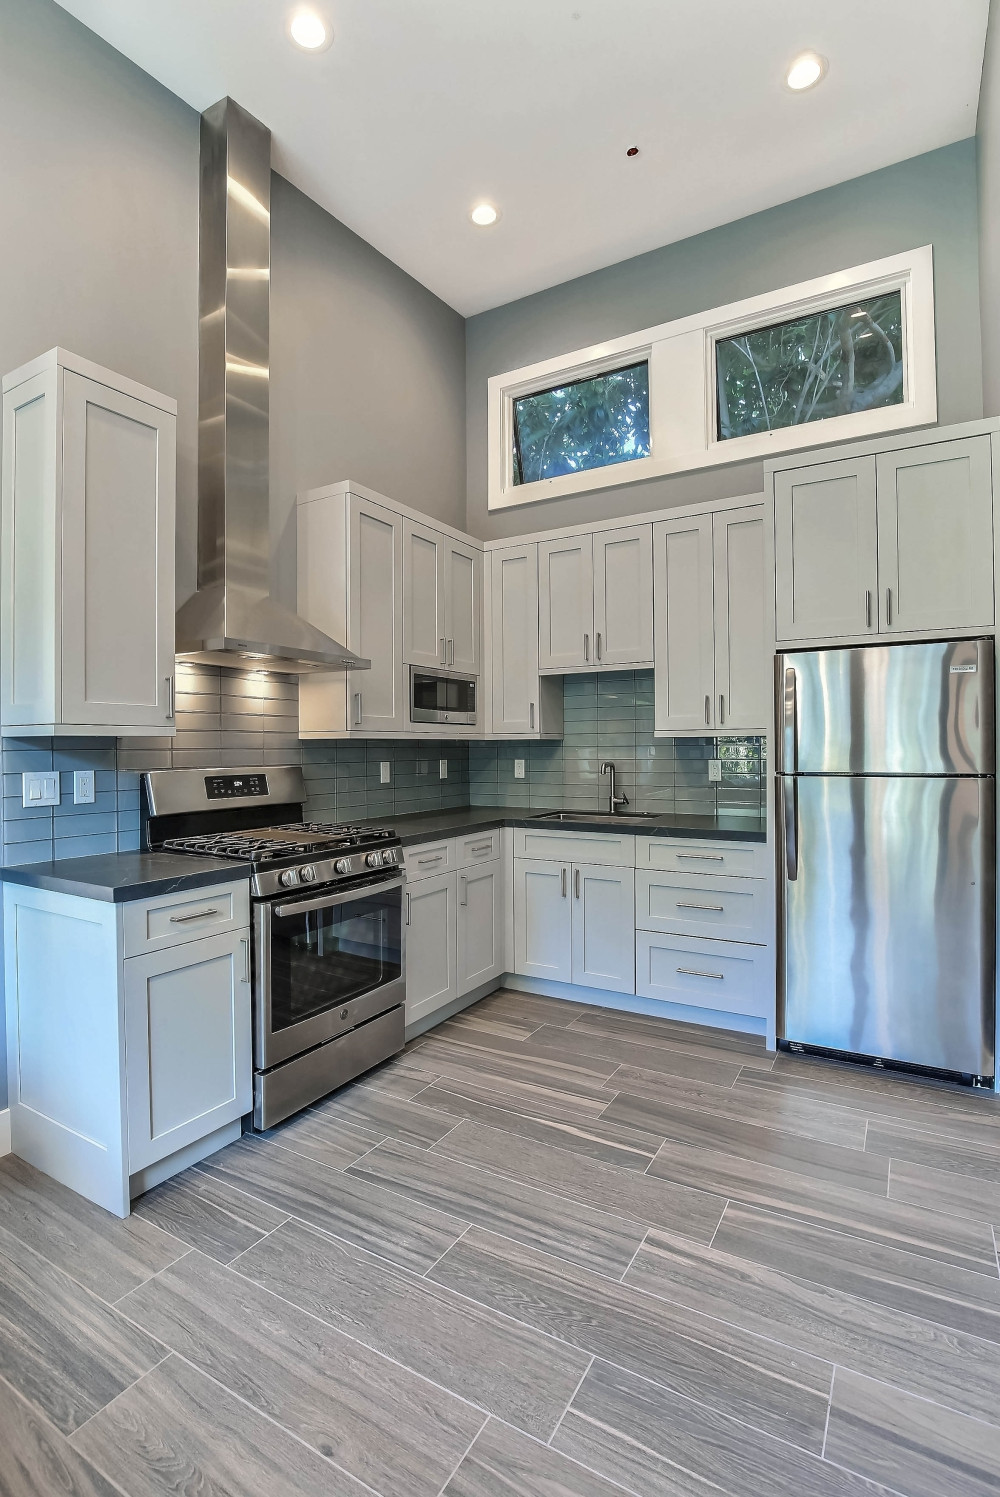 75 Beautiful Small Modern Kitchen Pictures Ideas January 2021 Houzz